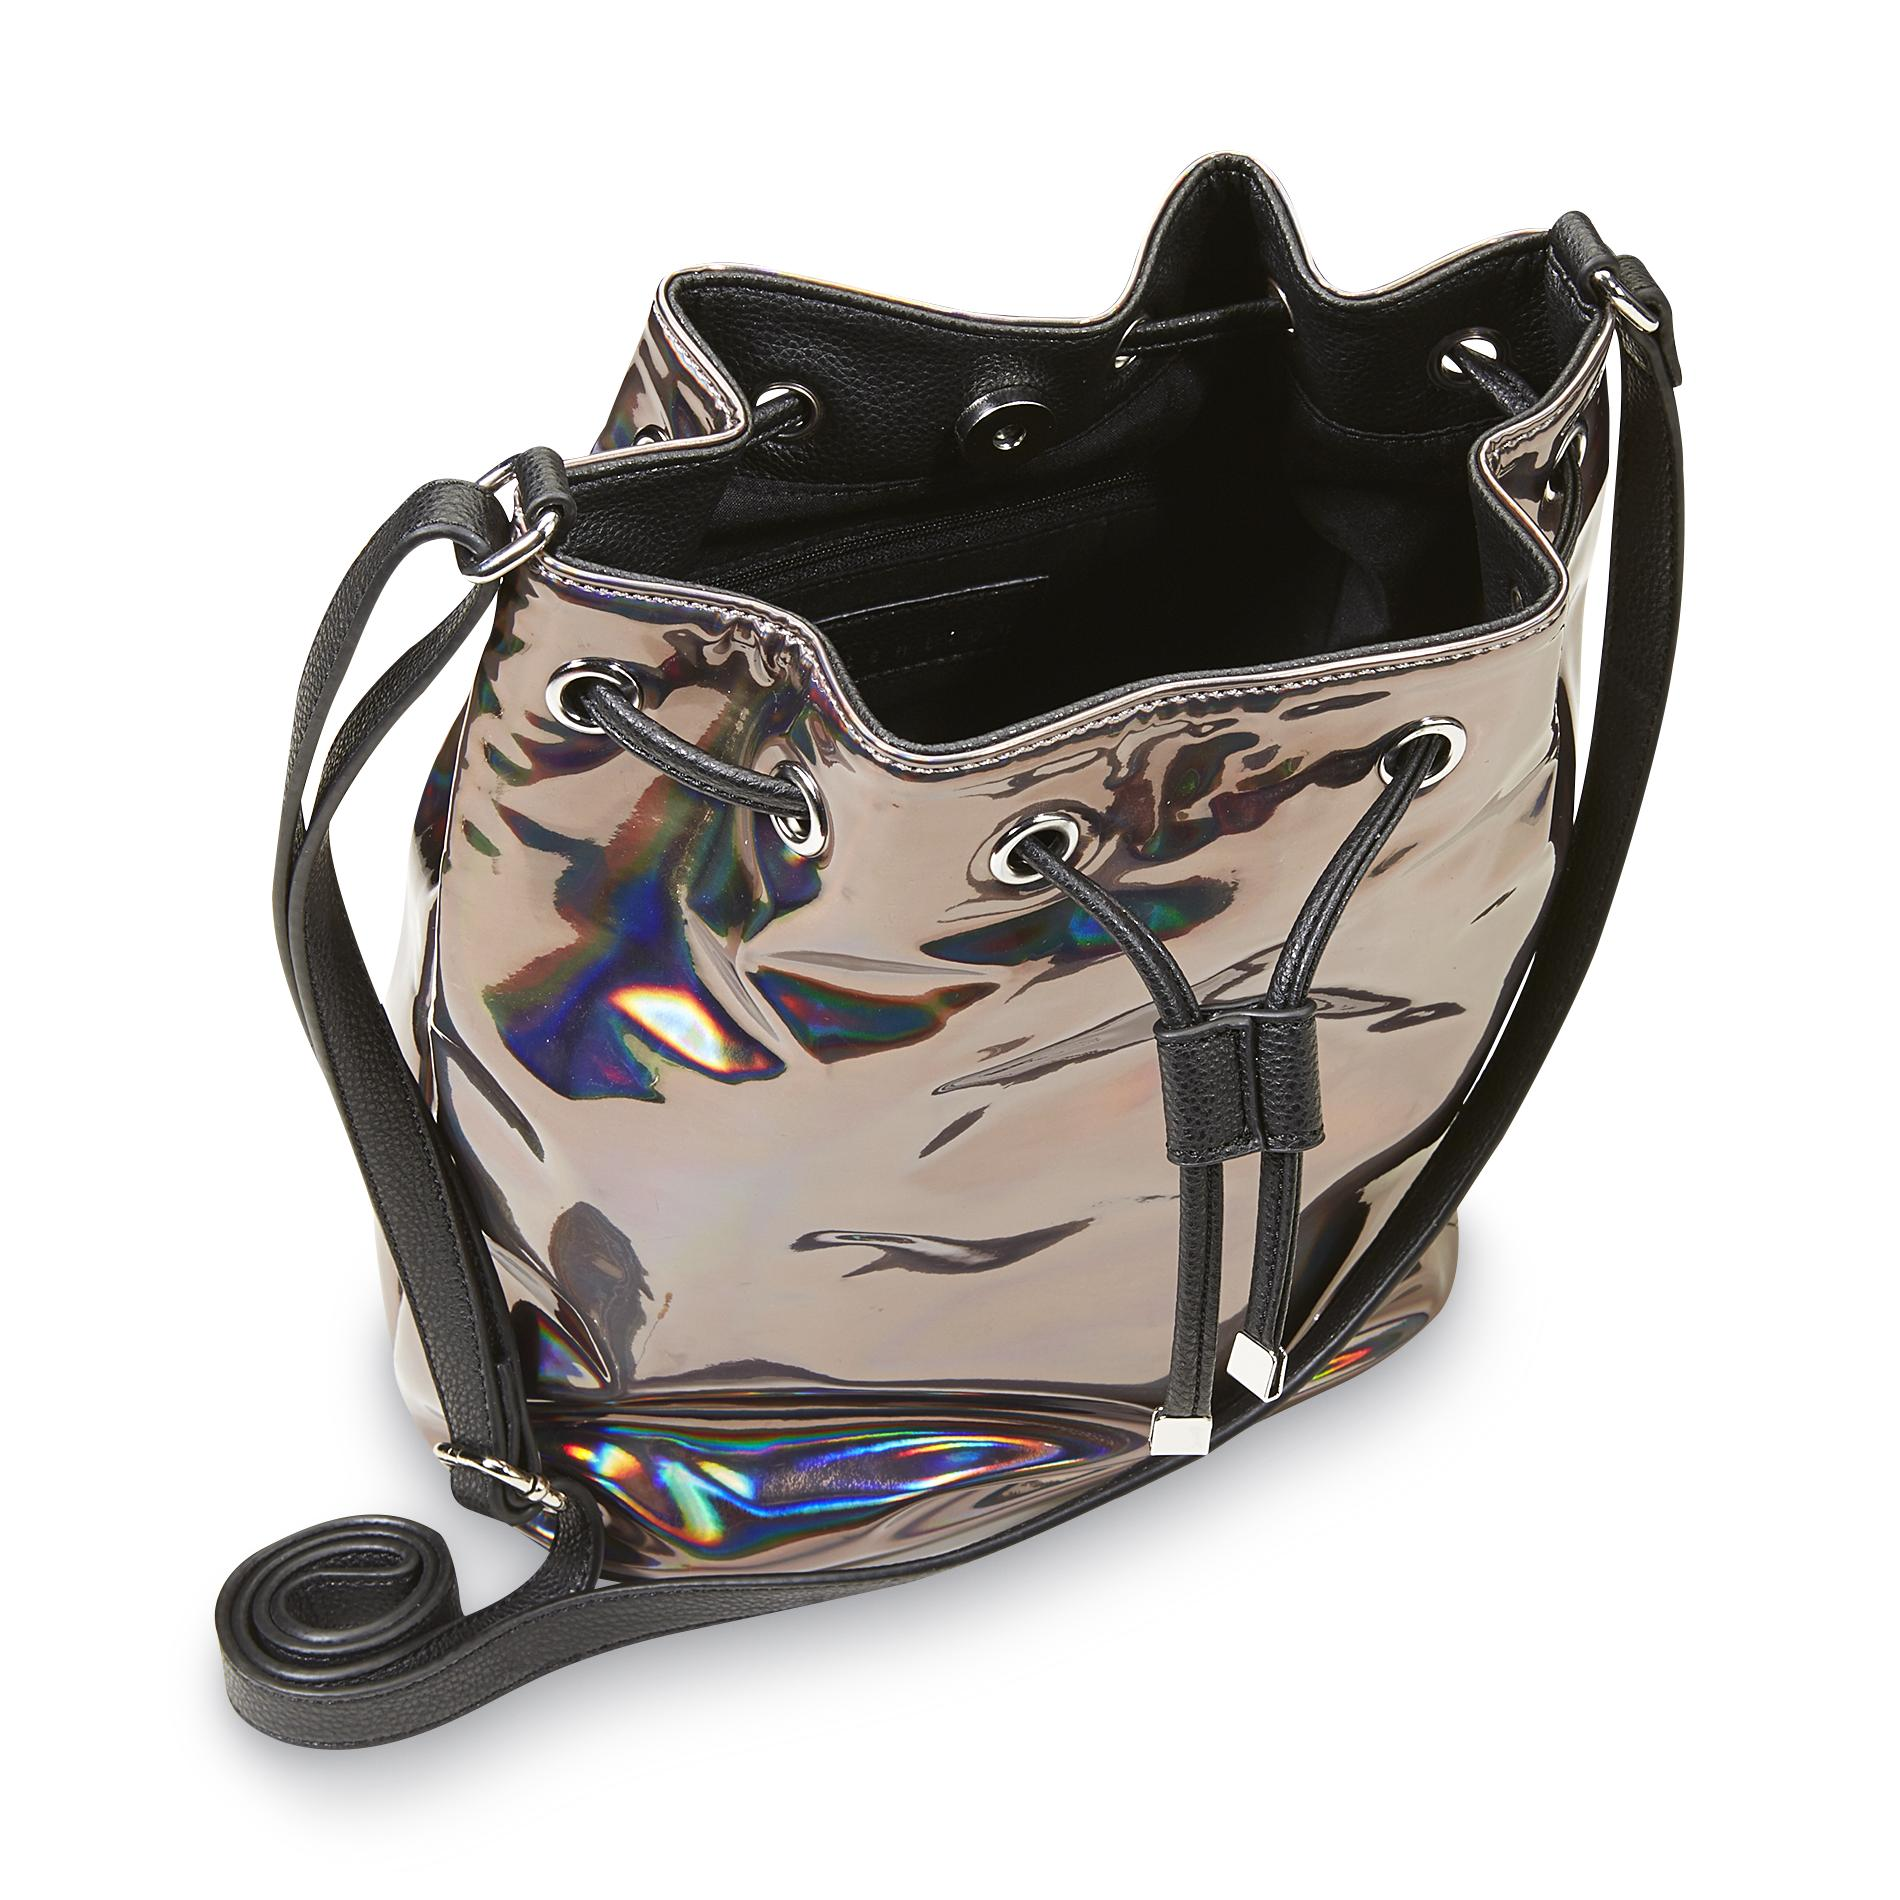 Attention Women's Buck It Bucket Bag - Prismatic